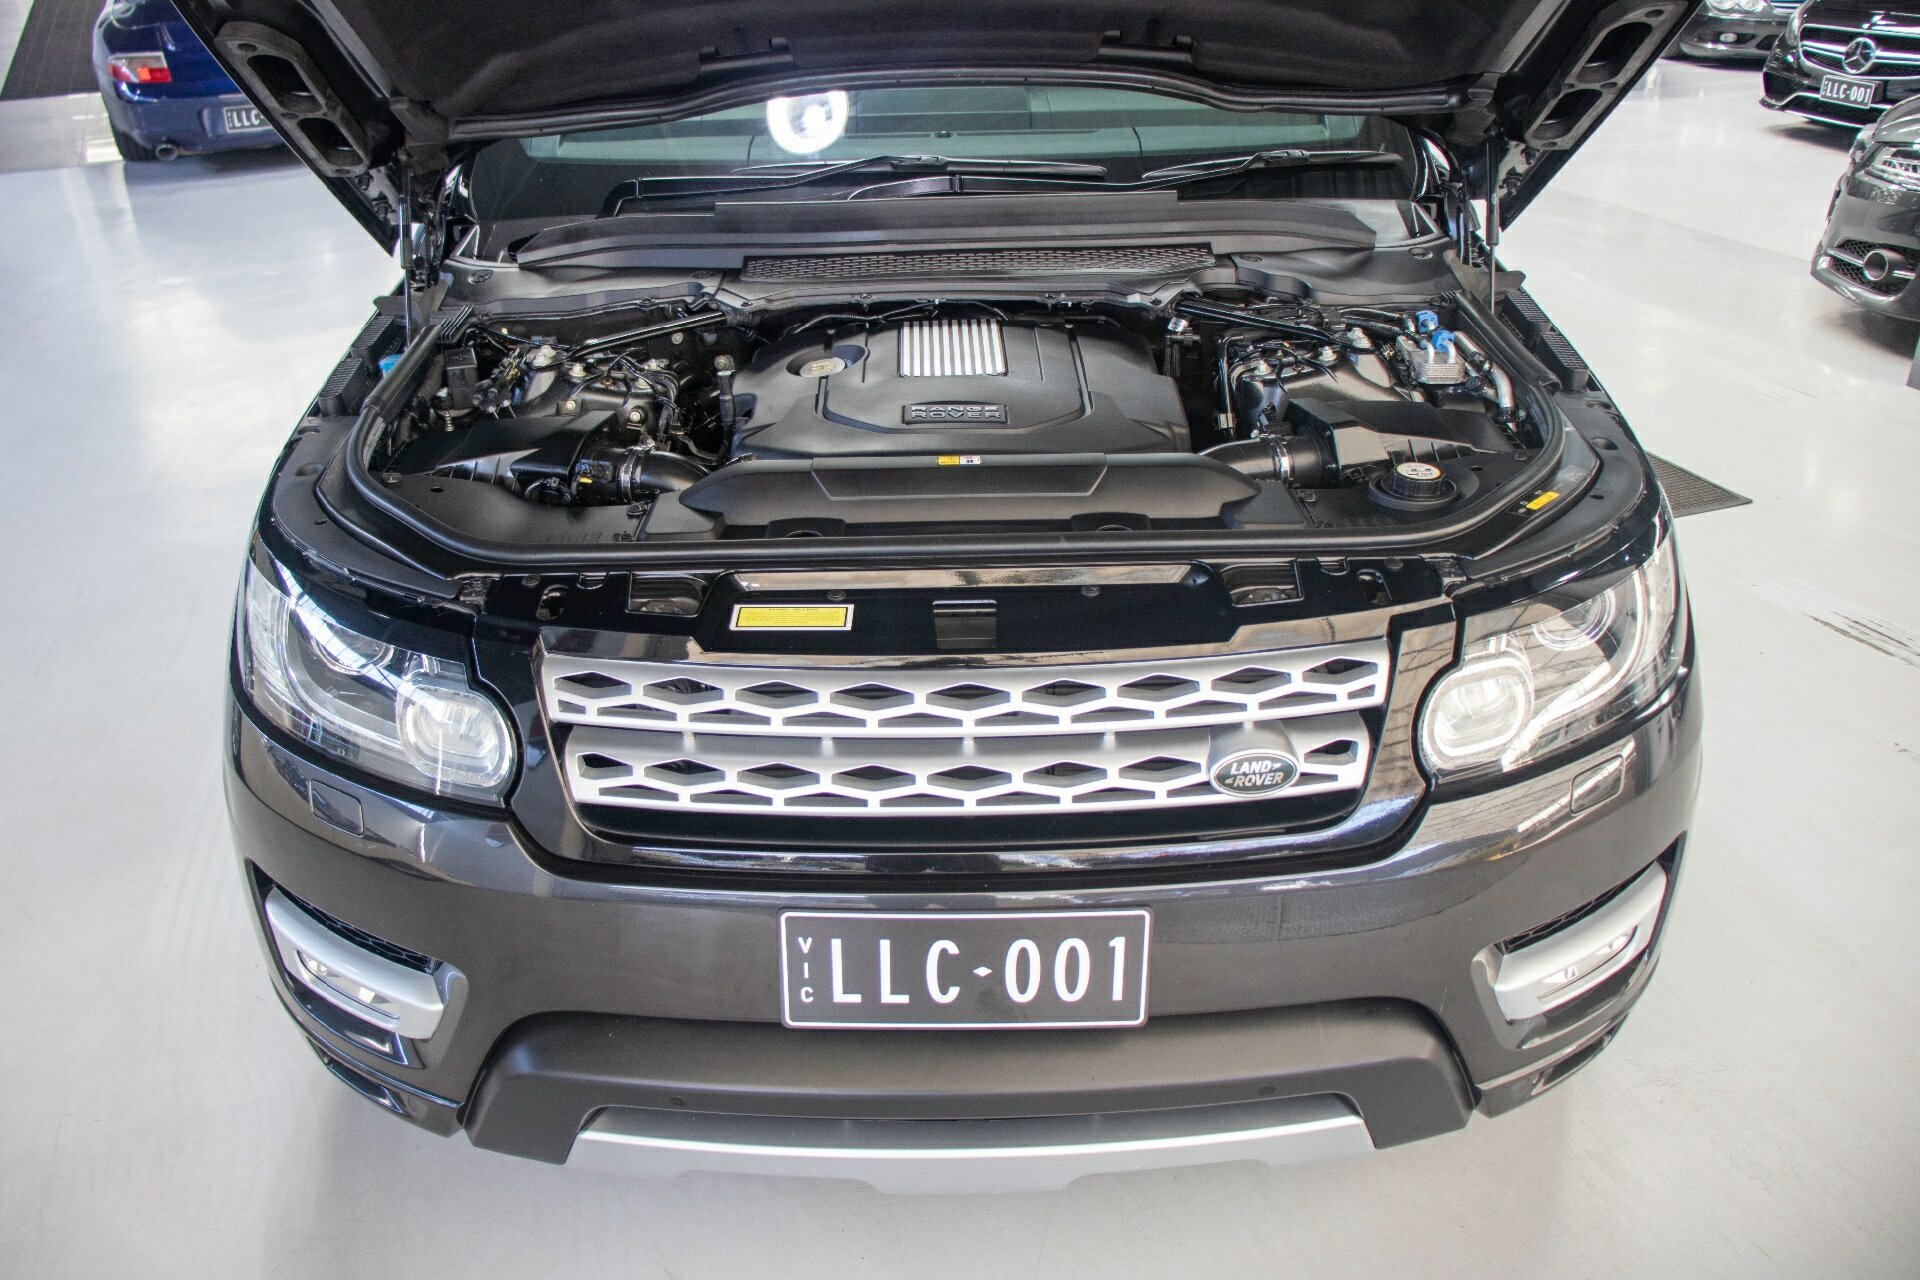 2014 Land Rover Range Rover Sport 3.0 Sdv6 Autobiography Lw